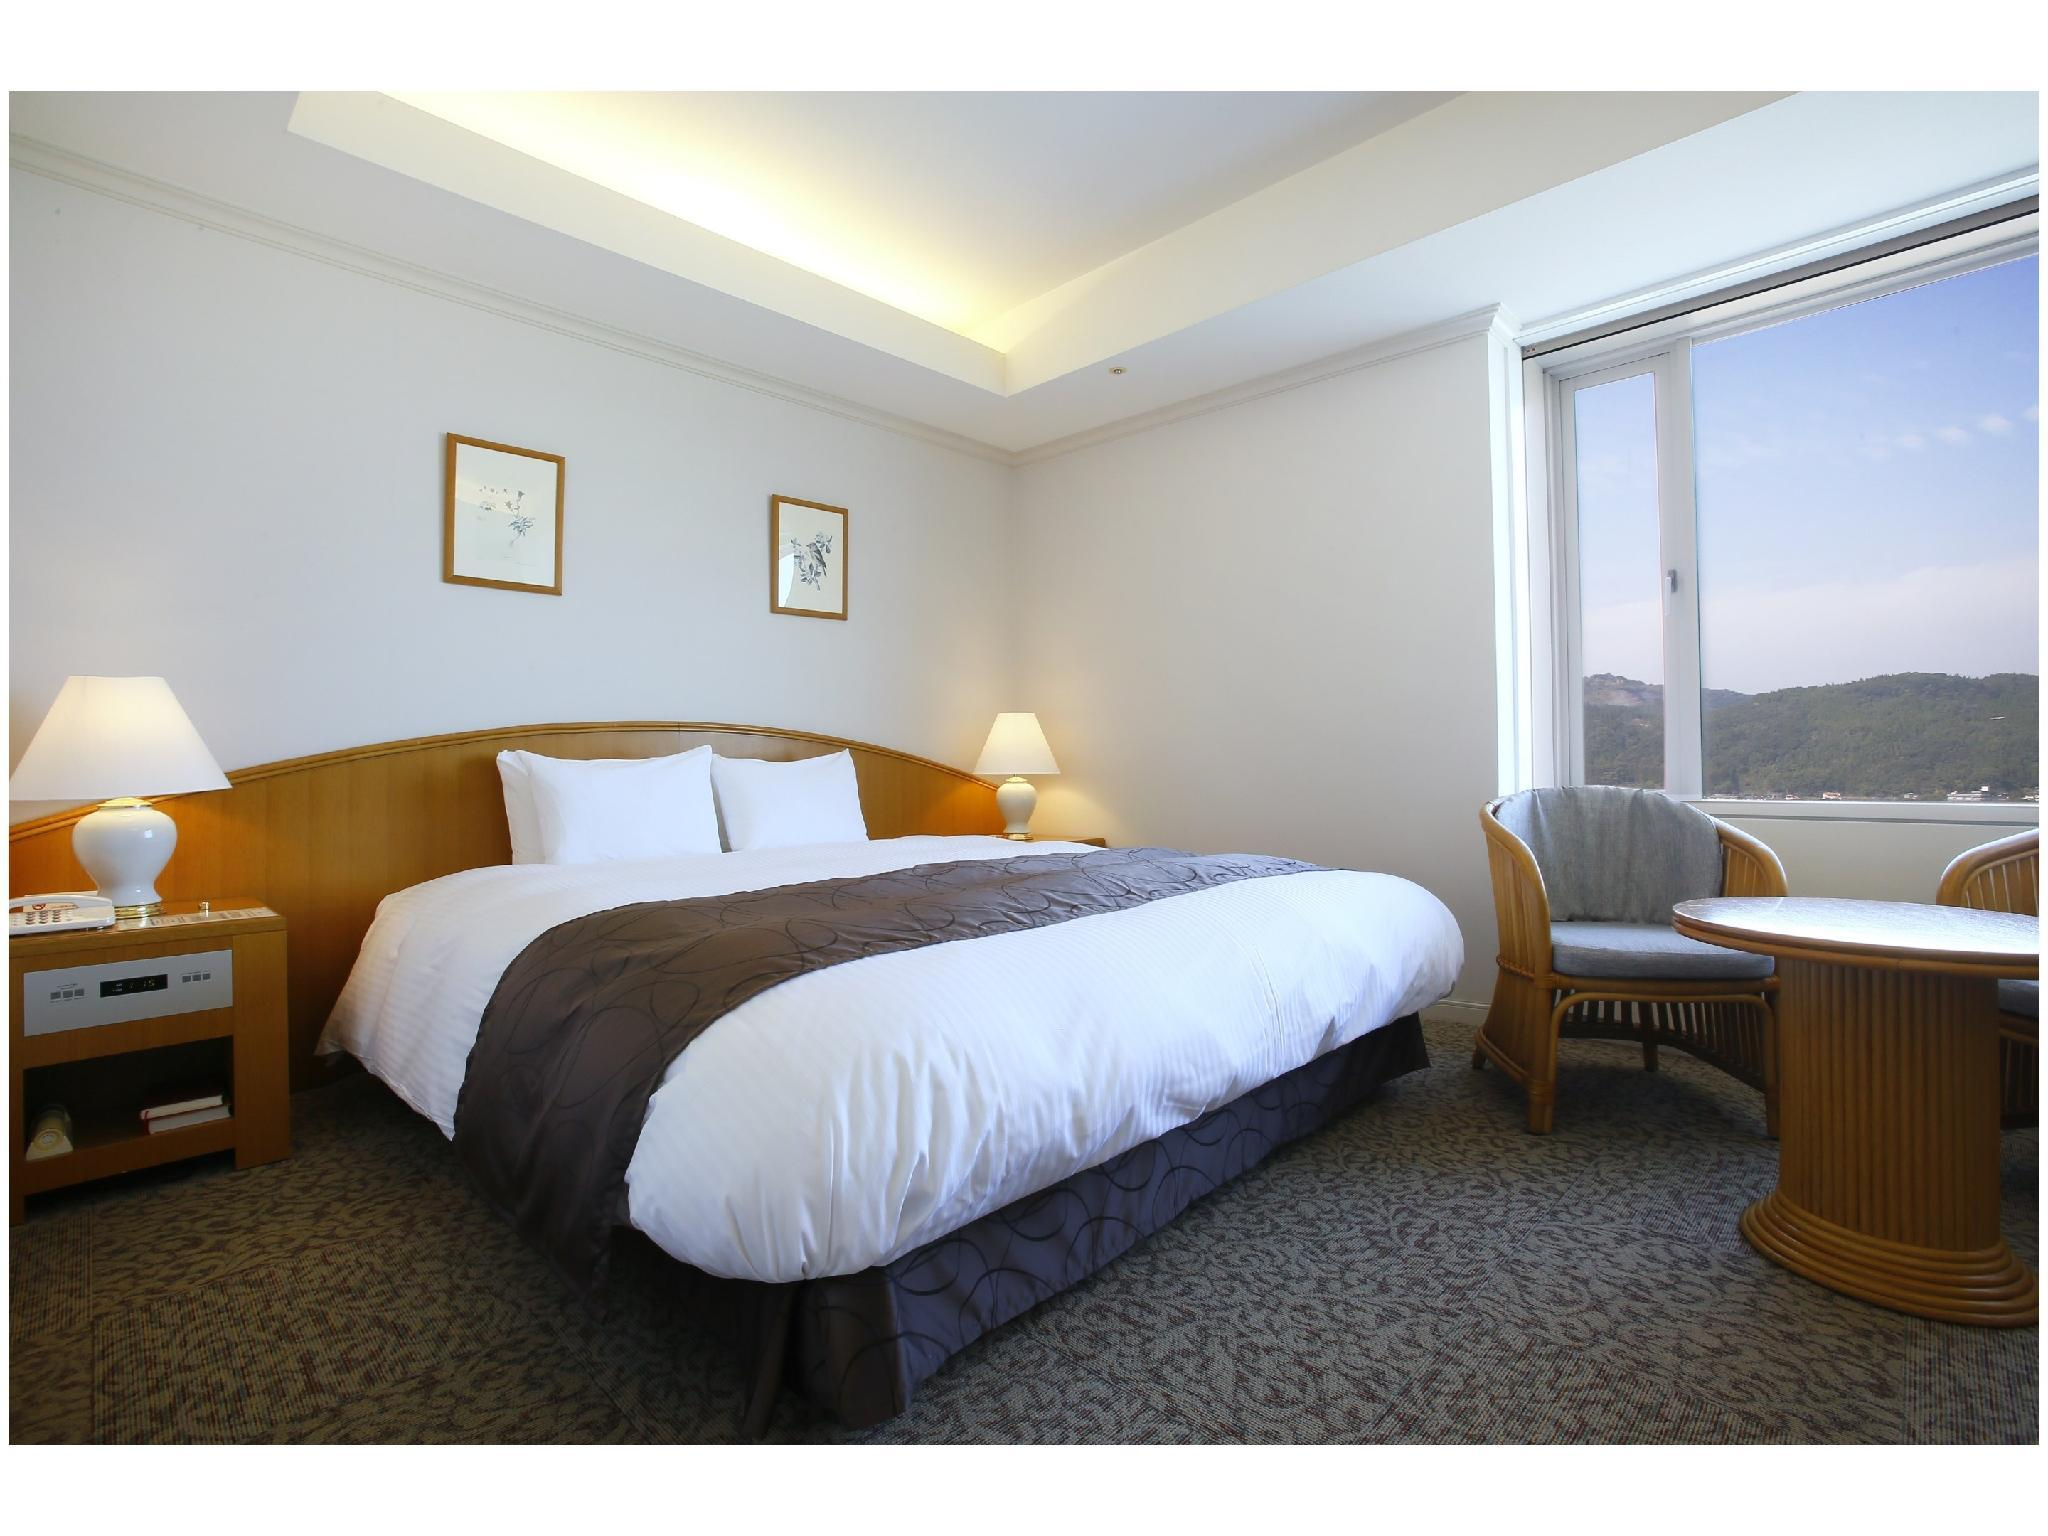 이그제큐티브 더블룸(본관) (Executive Double Room (Main Building))